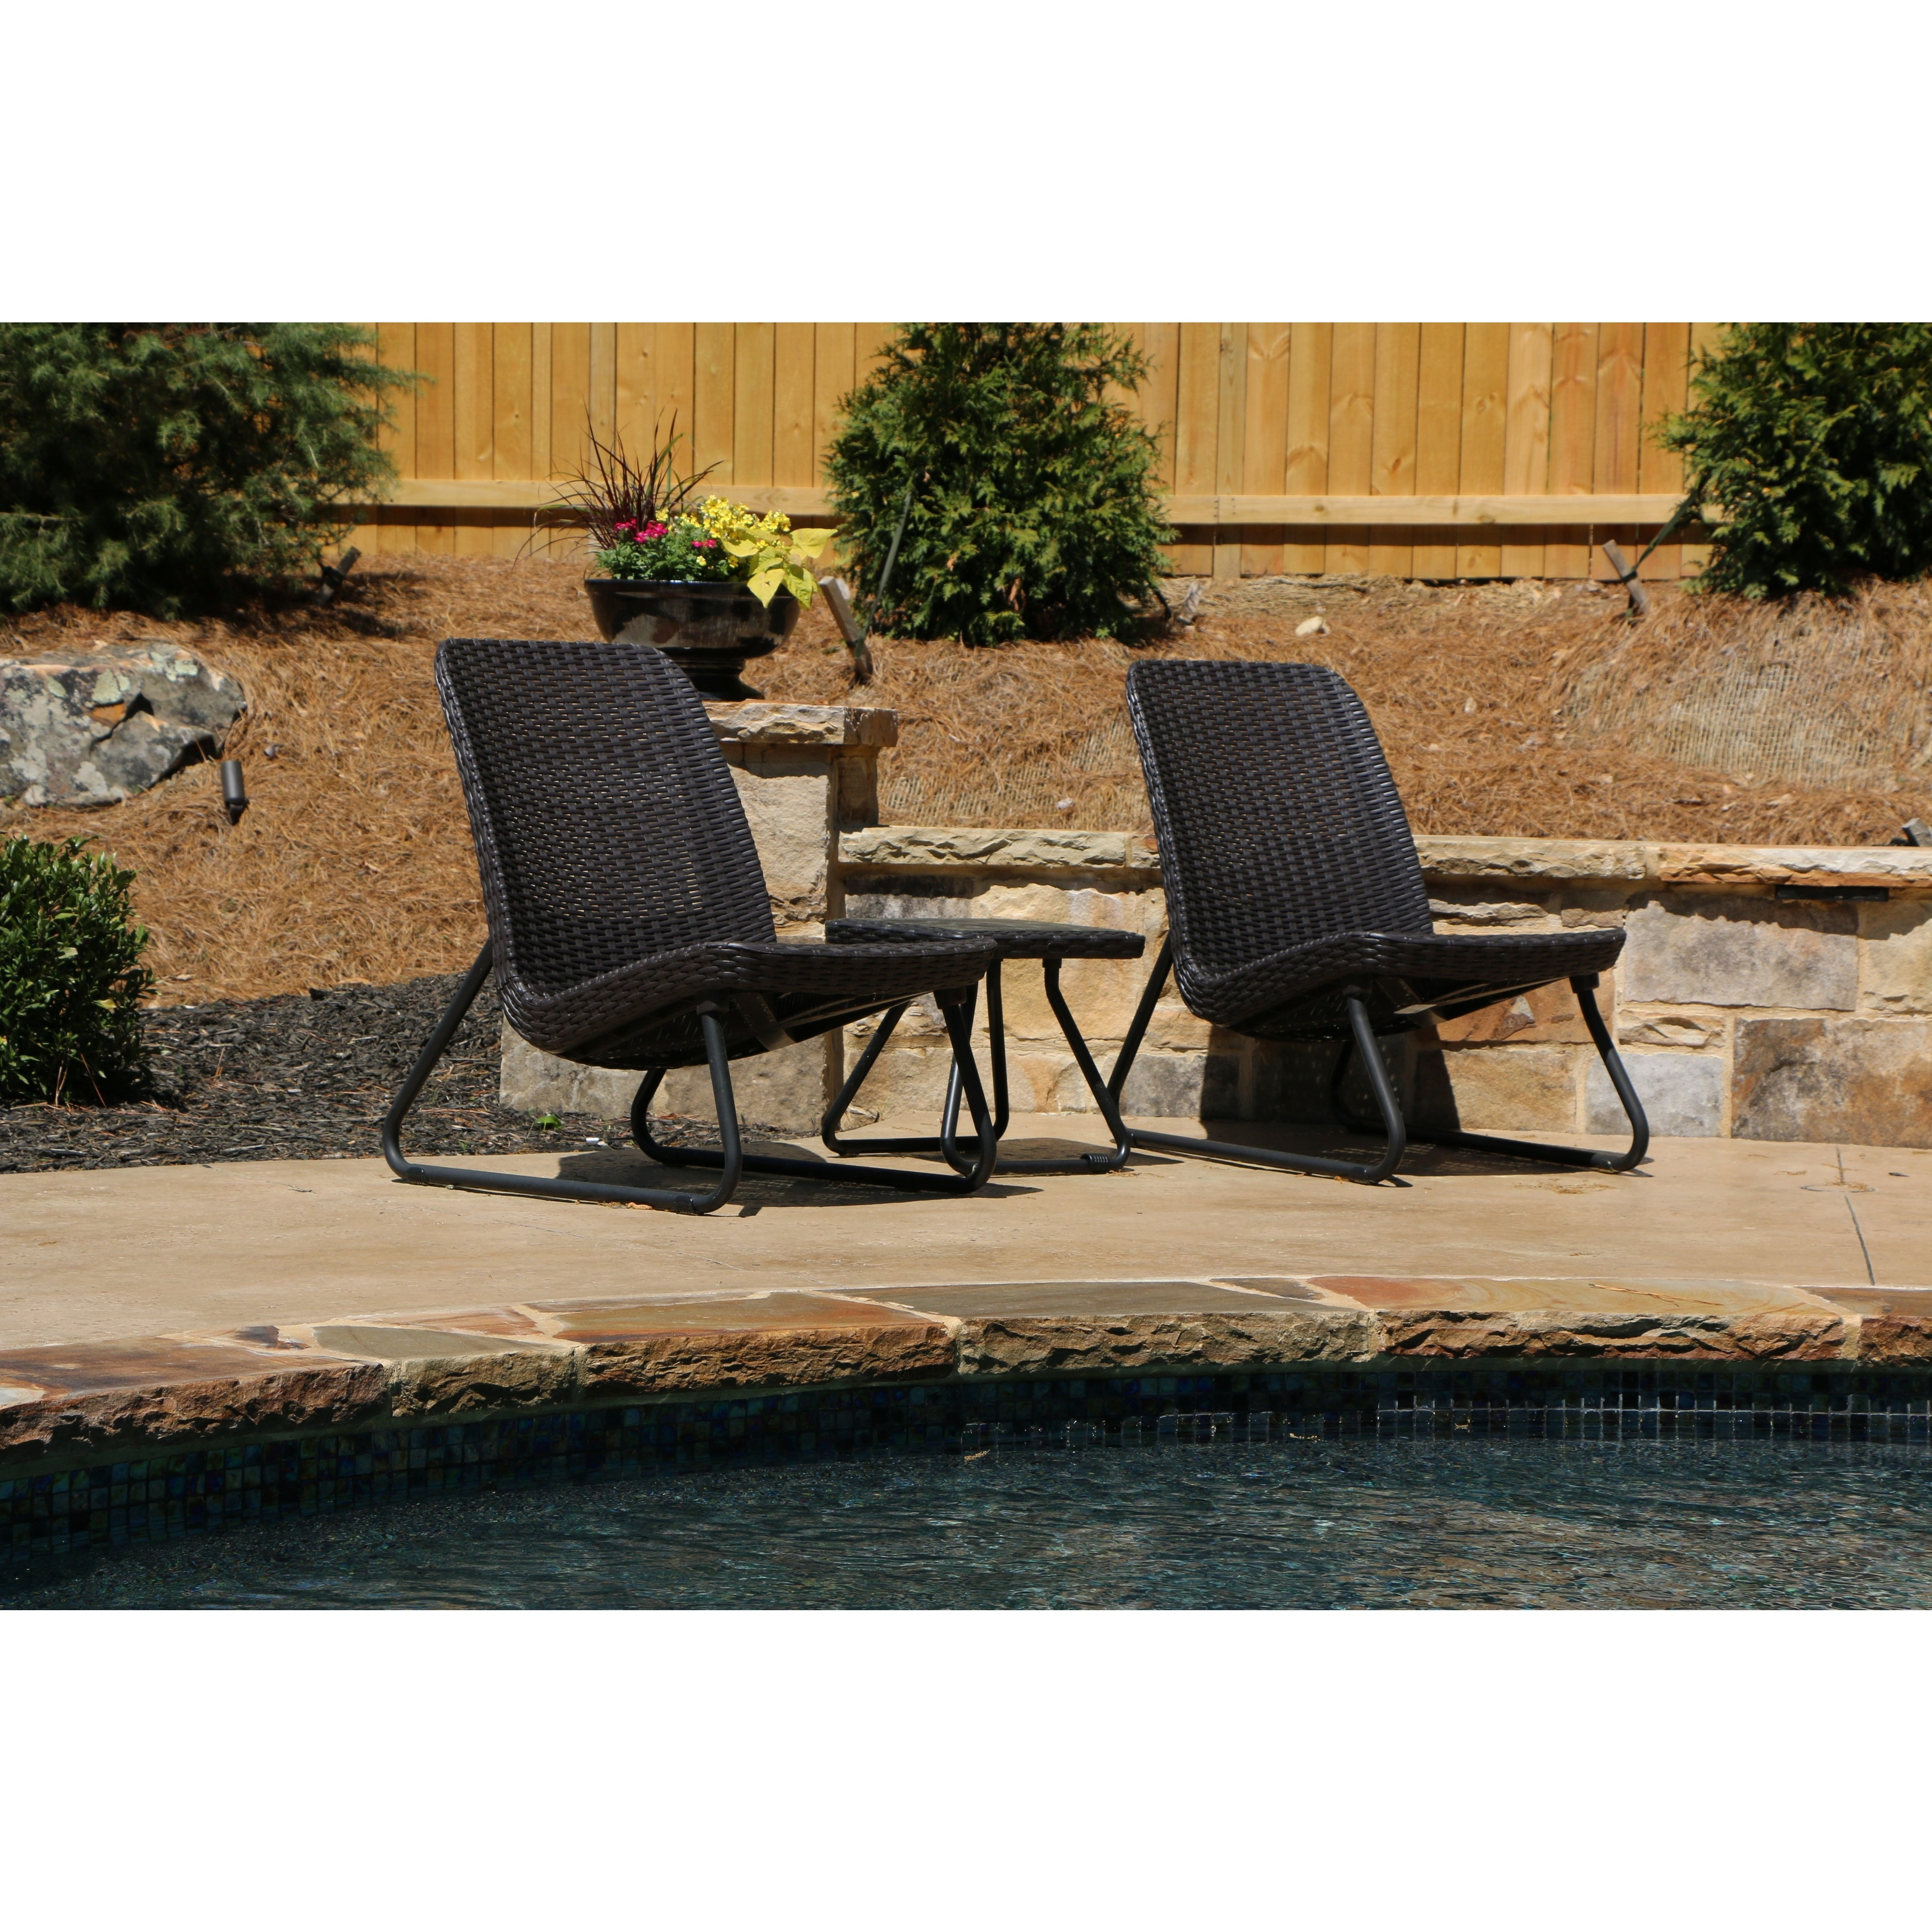 Luxury All Weather Patio Furniture